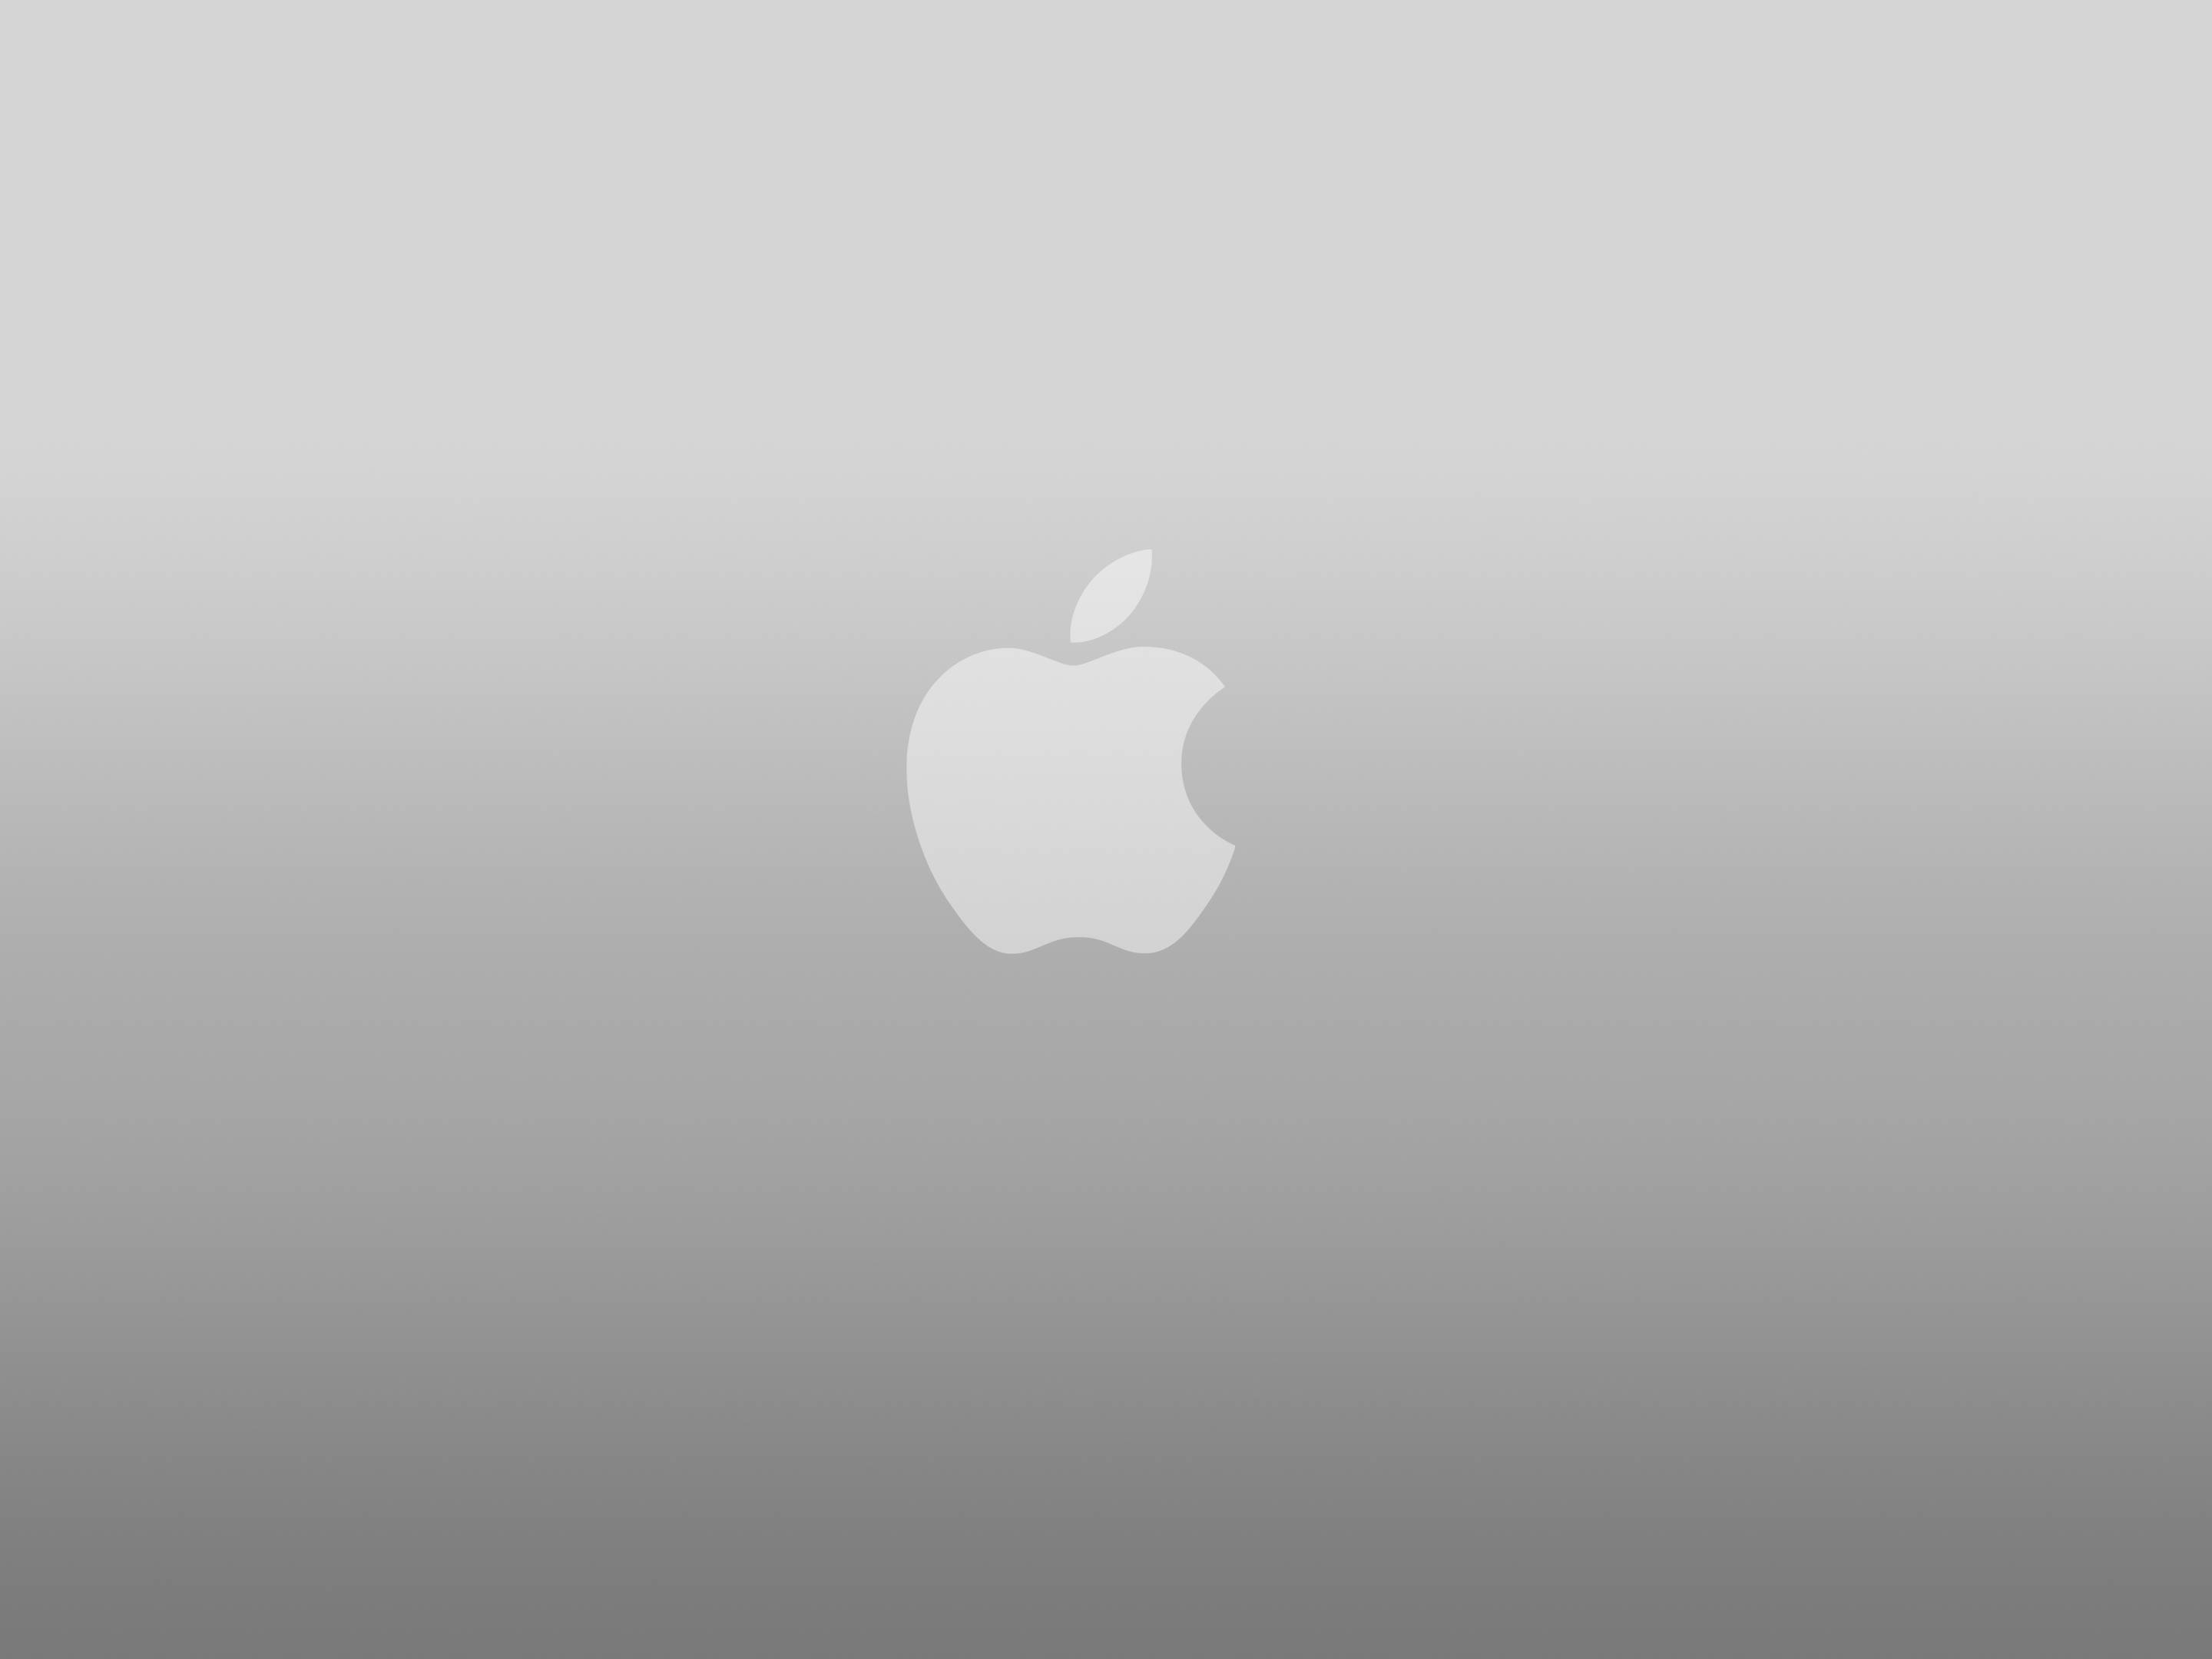 20 Excellent Apple Logo Wallpapers